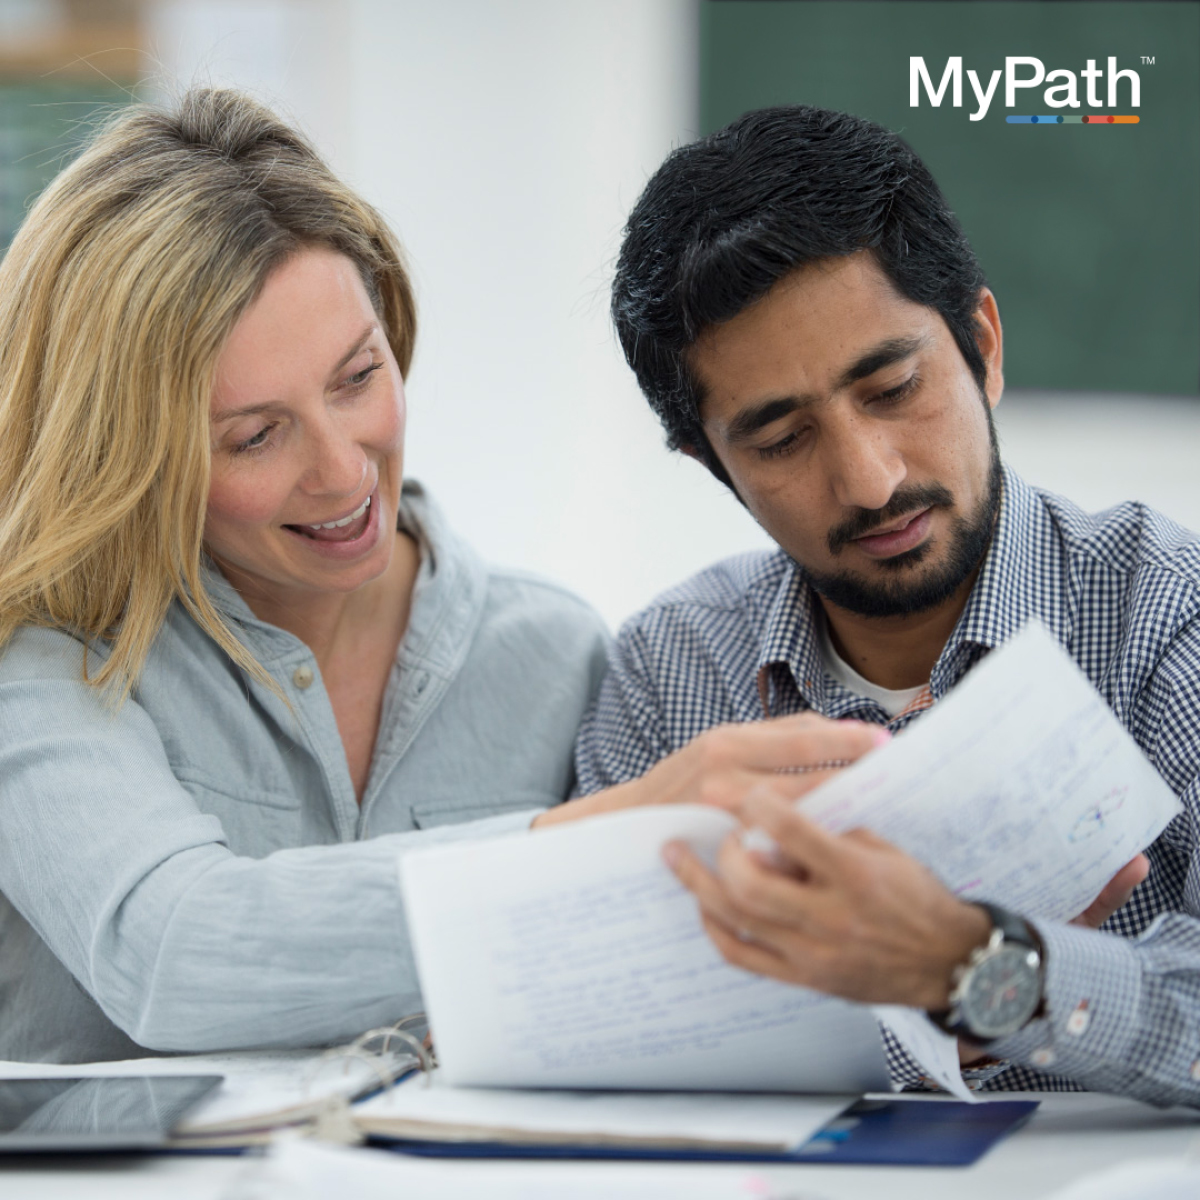 Manpower Facebook Tutor MyPath